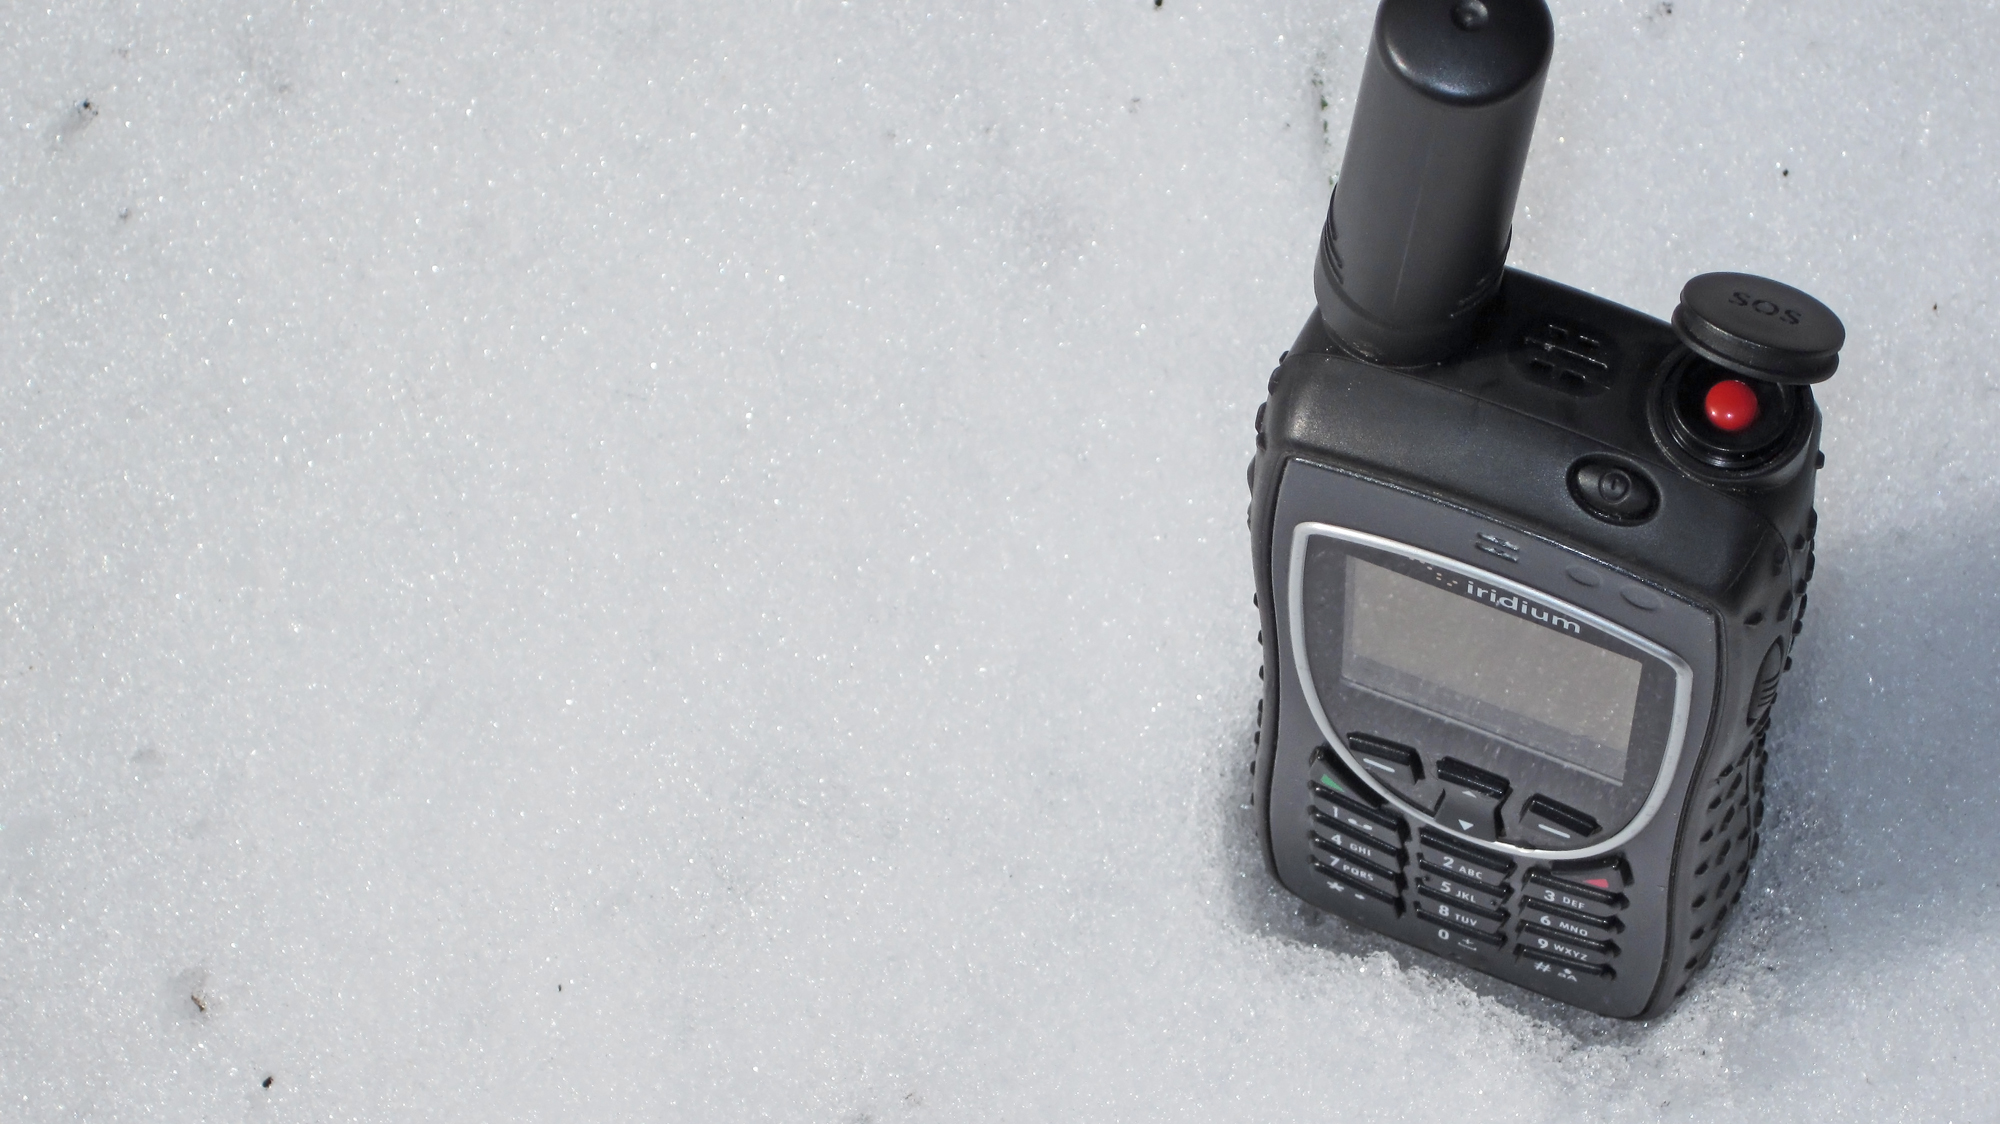 iridium-9575-extreme-satellite-phone-showing-sos-button-in-the-snow-northernaxcess.jpg